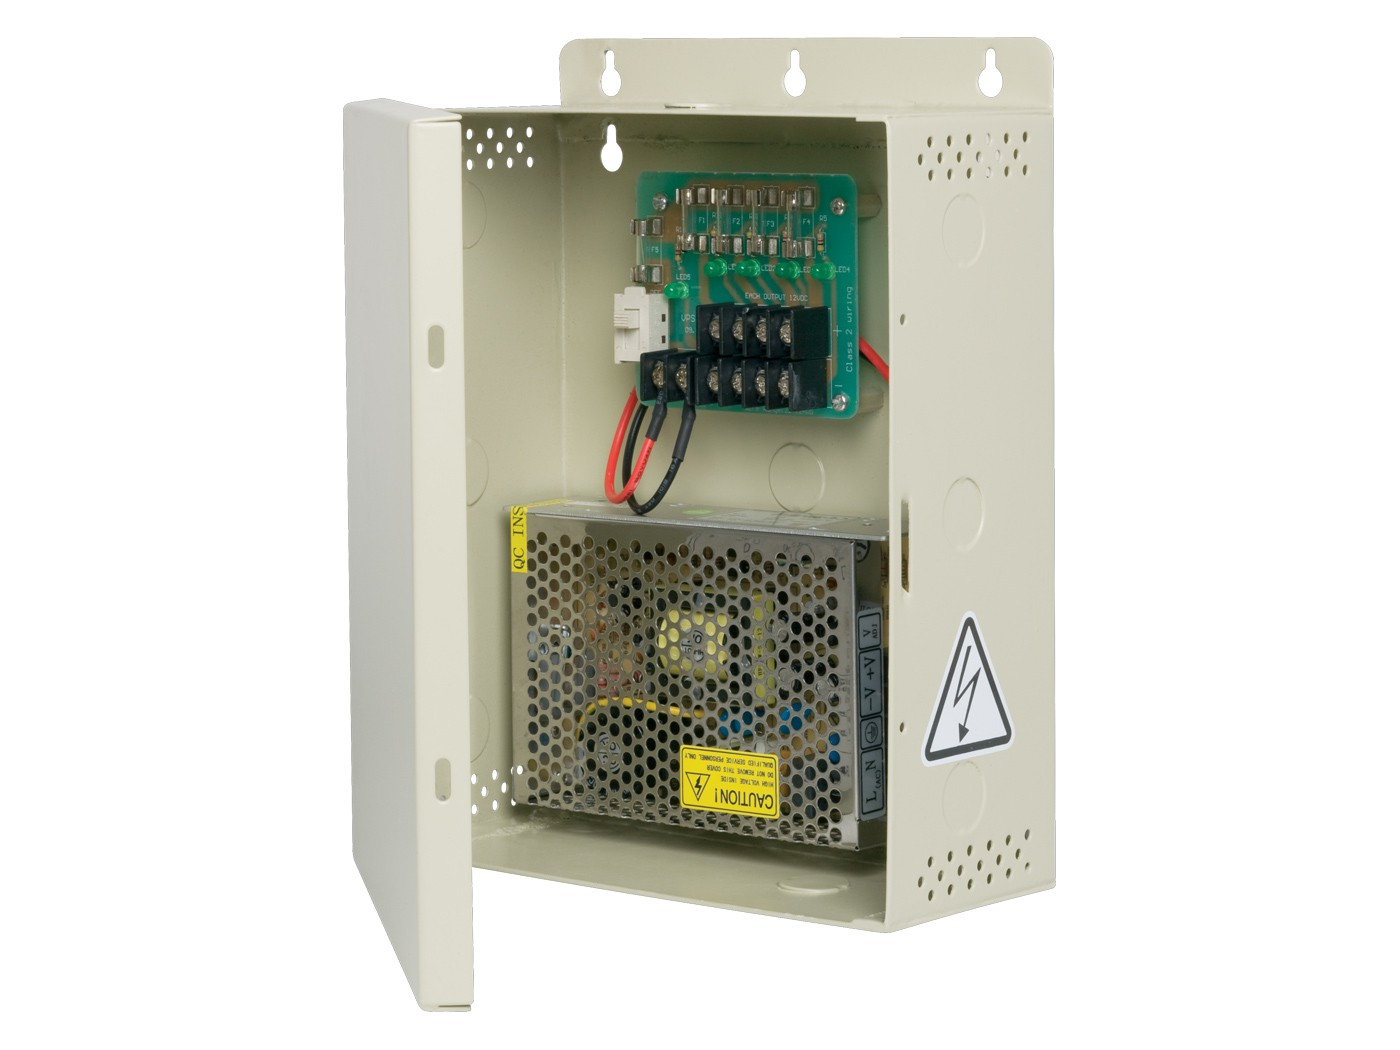 Truvision Power Supplies Video Solutions Interlogix Global 24 Volt Supply 10 Amp Single Output Security Products